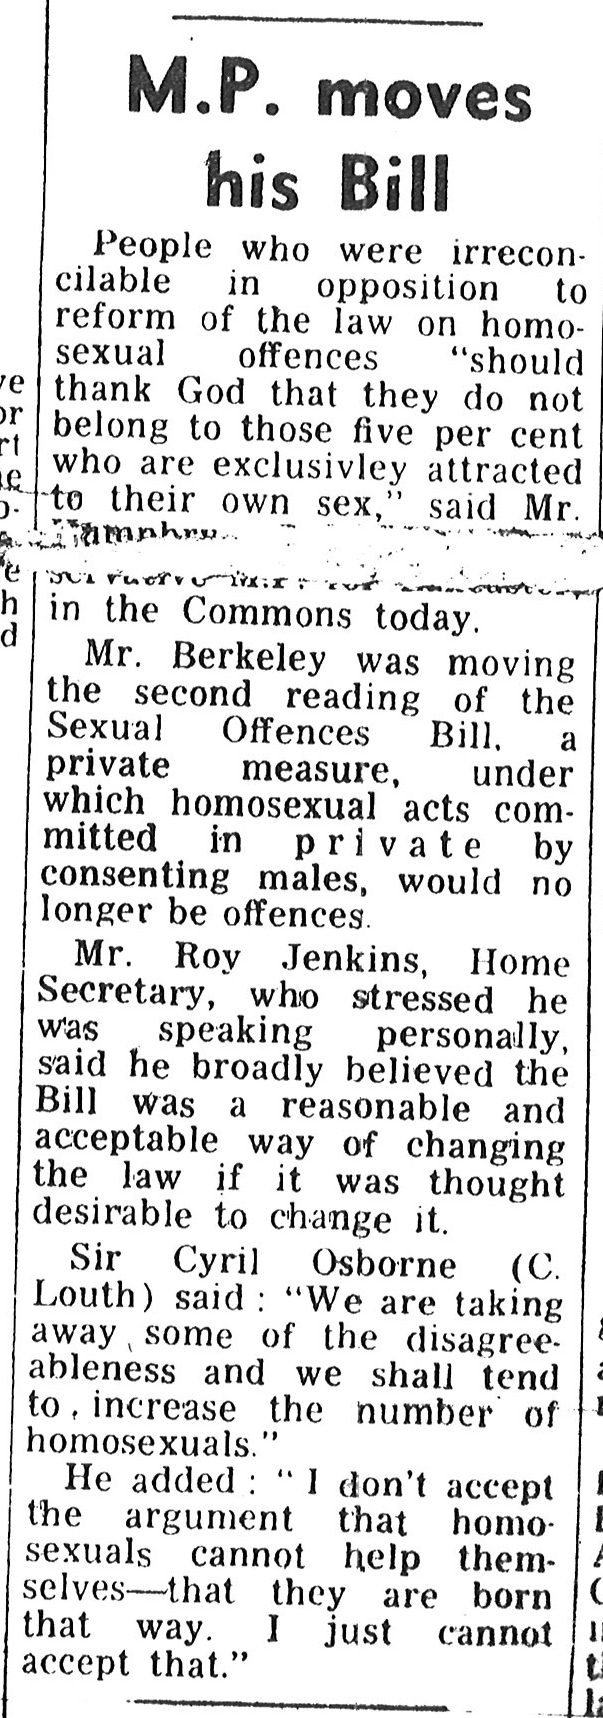 A newspaper extract about the Criminal Offences Bill 1967